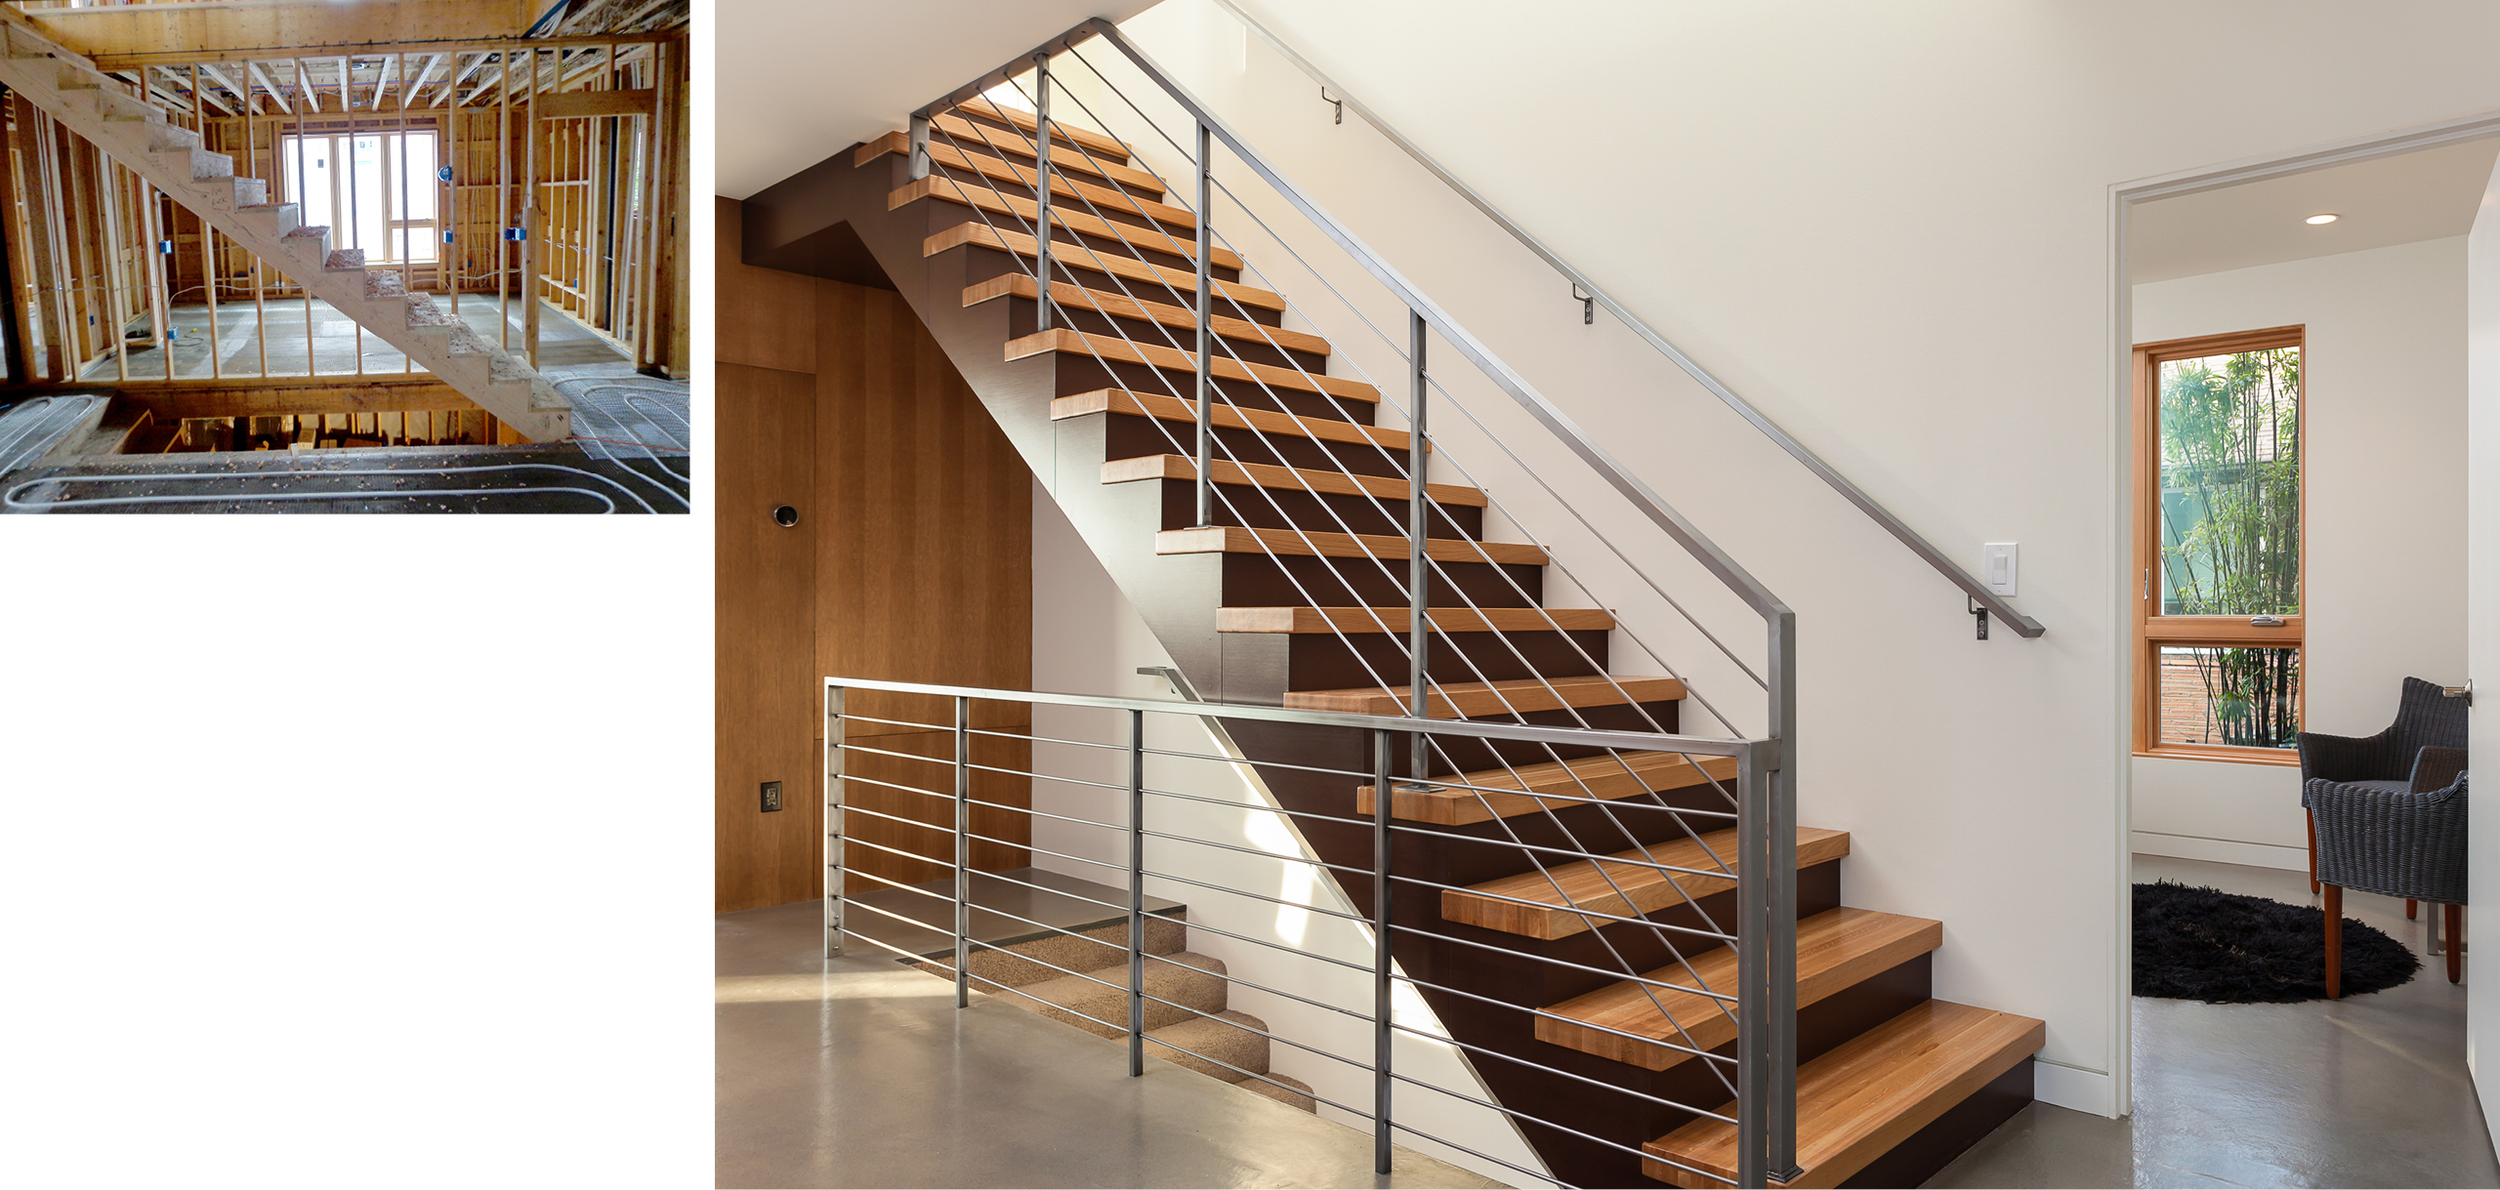 Center Staircase and Radiant Floor